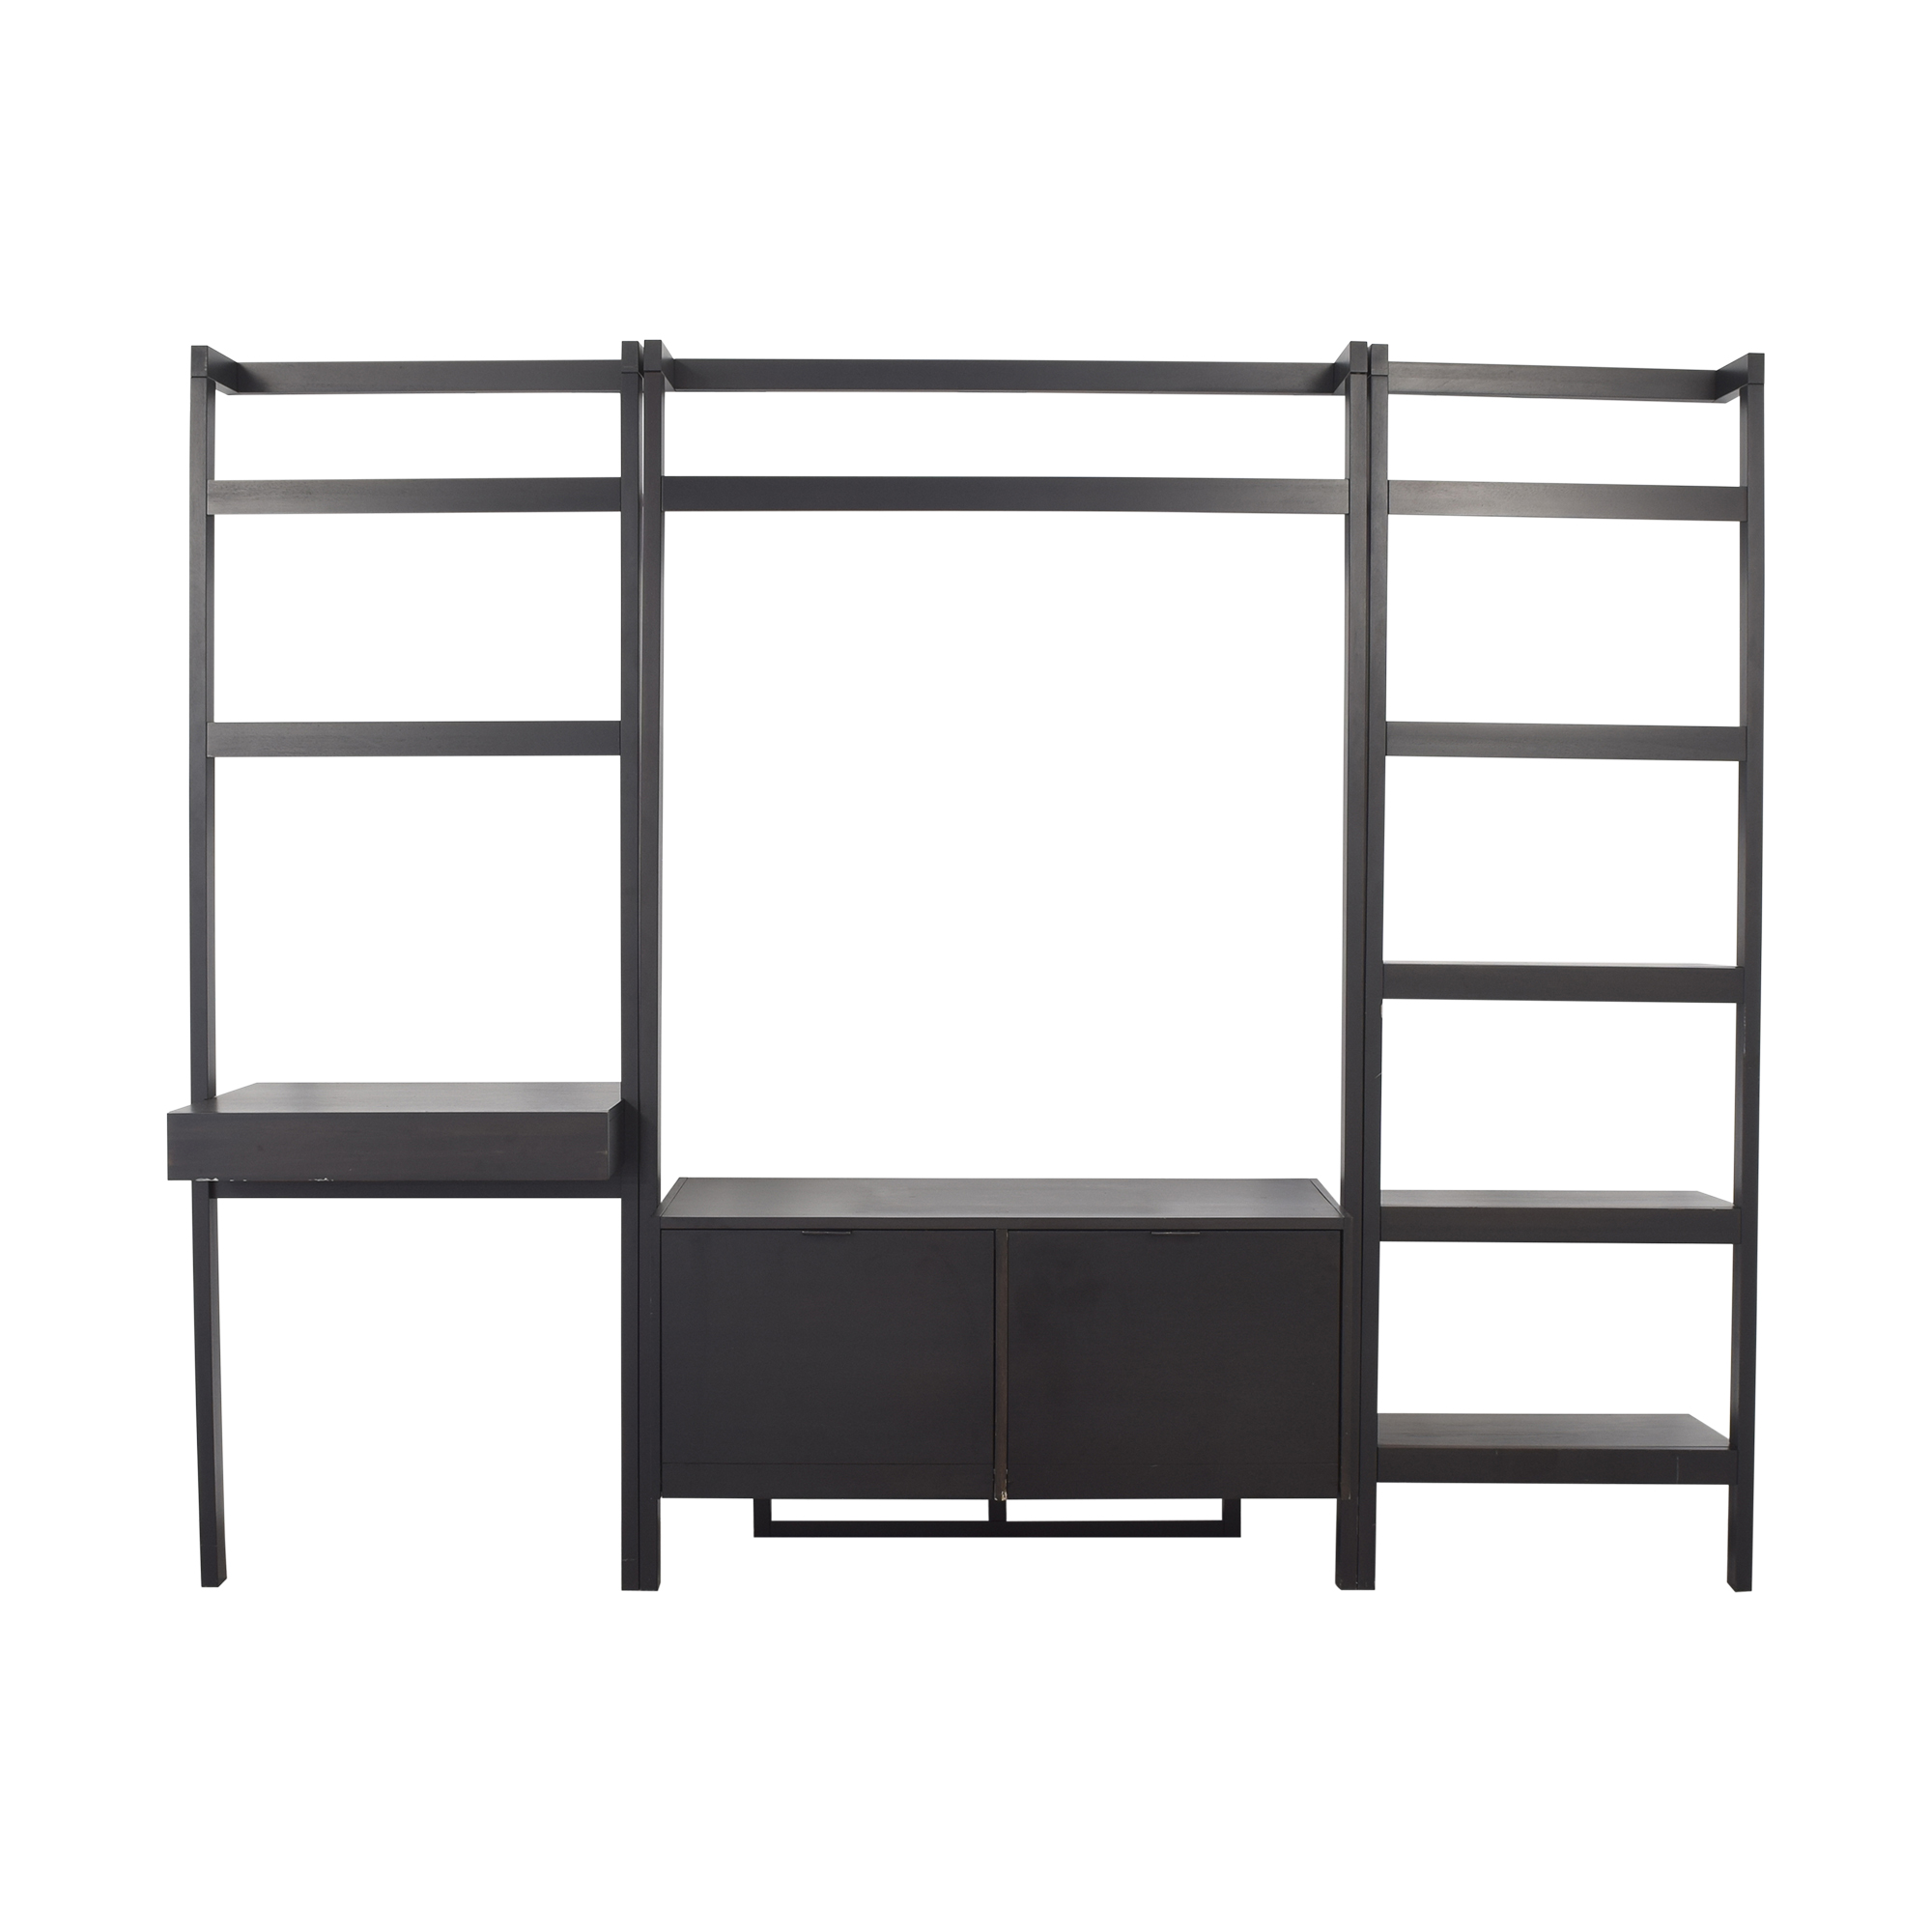 Crate & Barrel Crate & Barrel Sawyer Leaning Media Stand with Bookcases used